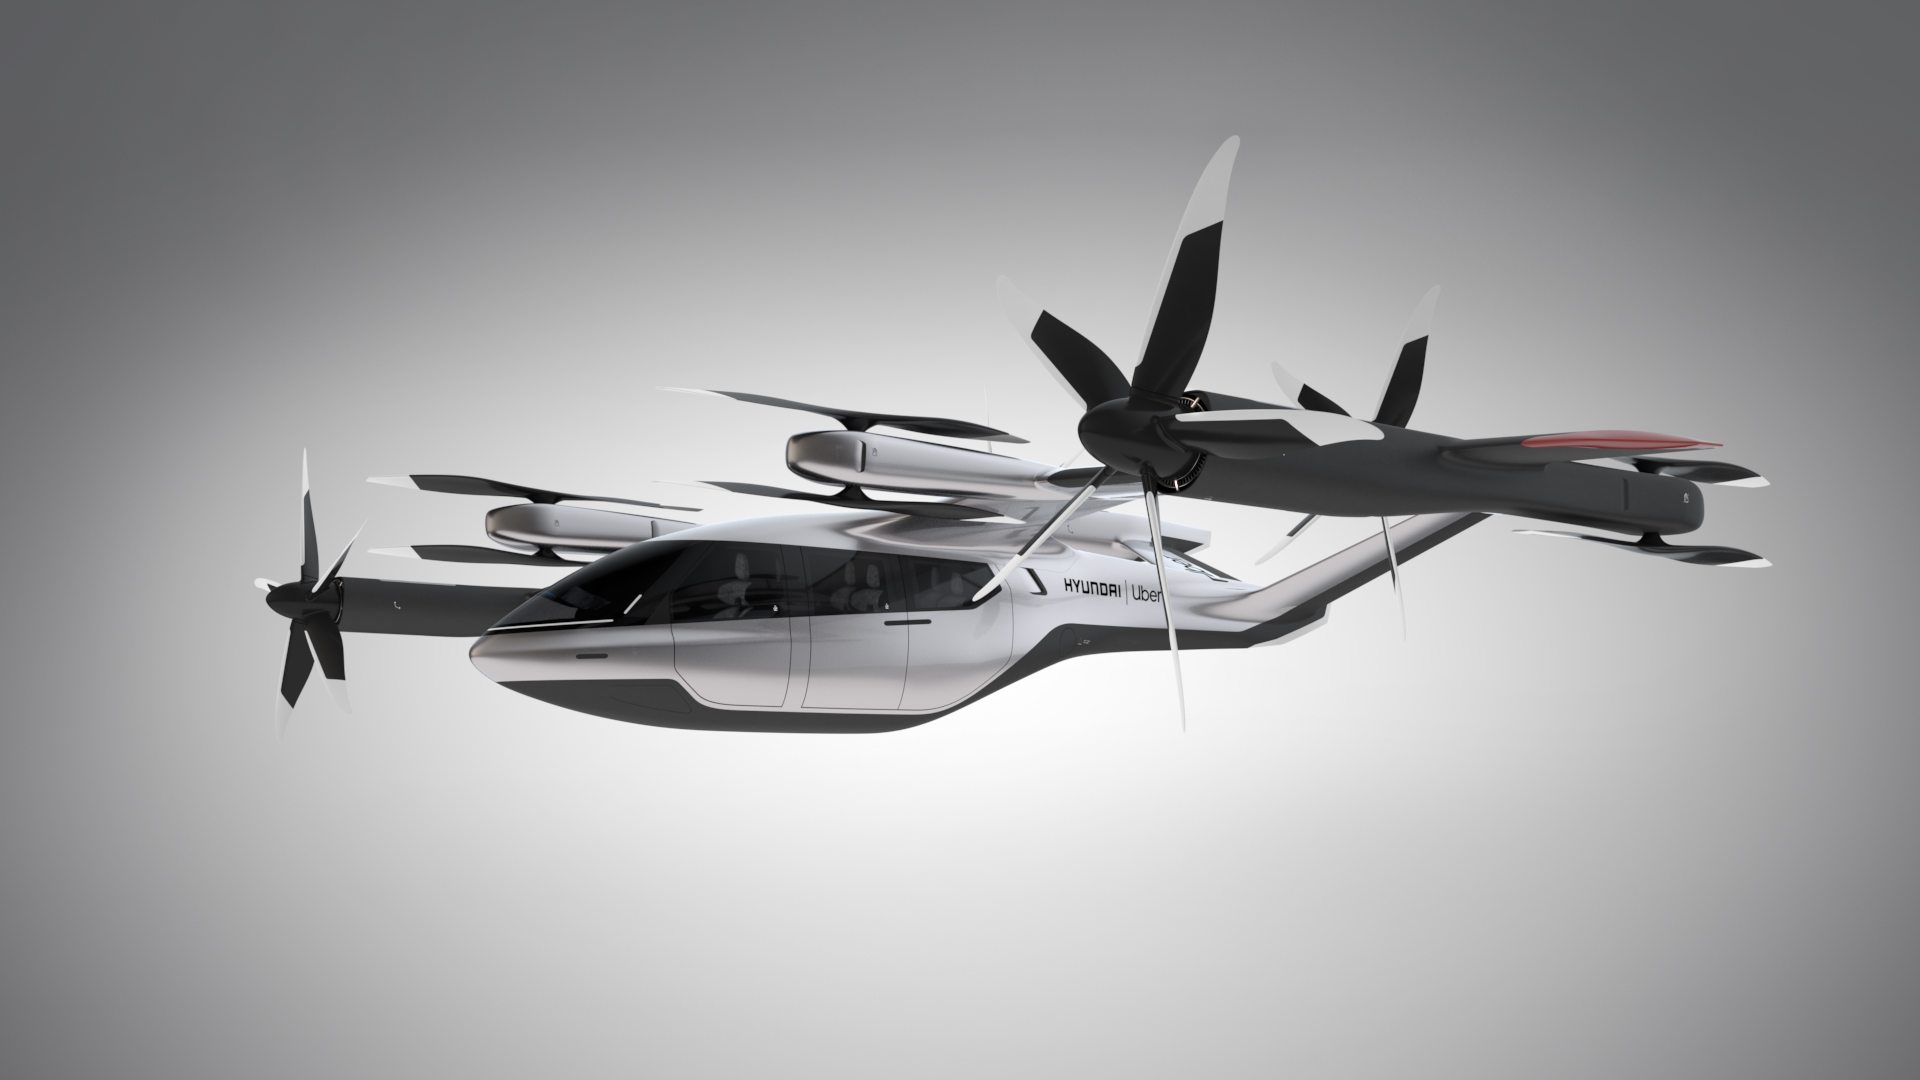 Uber Air / Hyundai S-A1 Air Taxi Concept